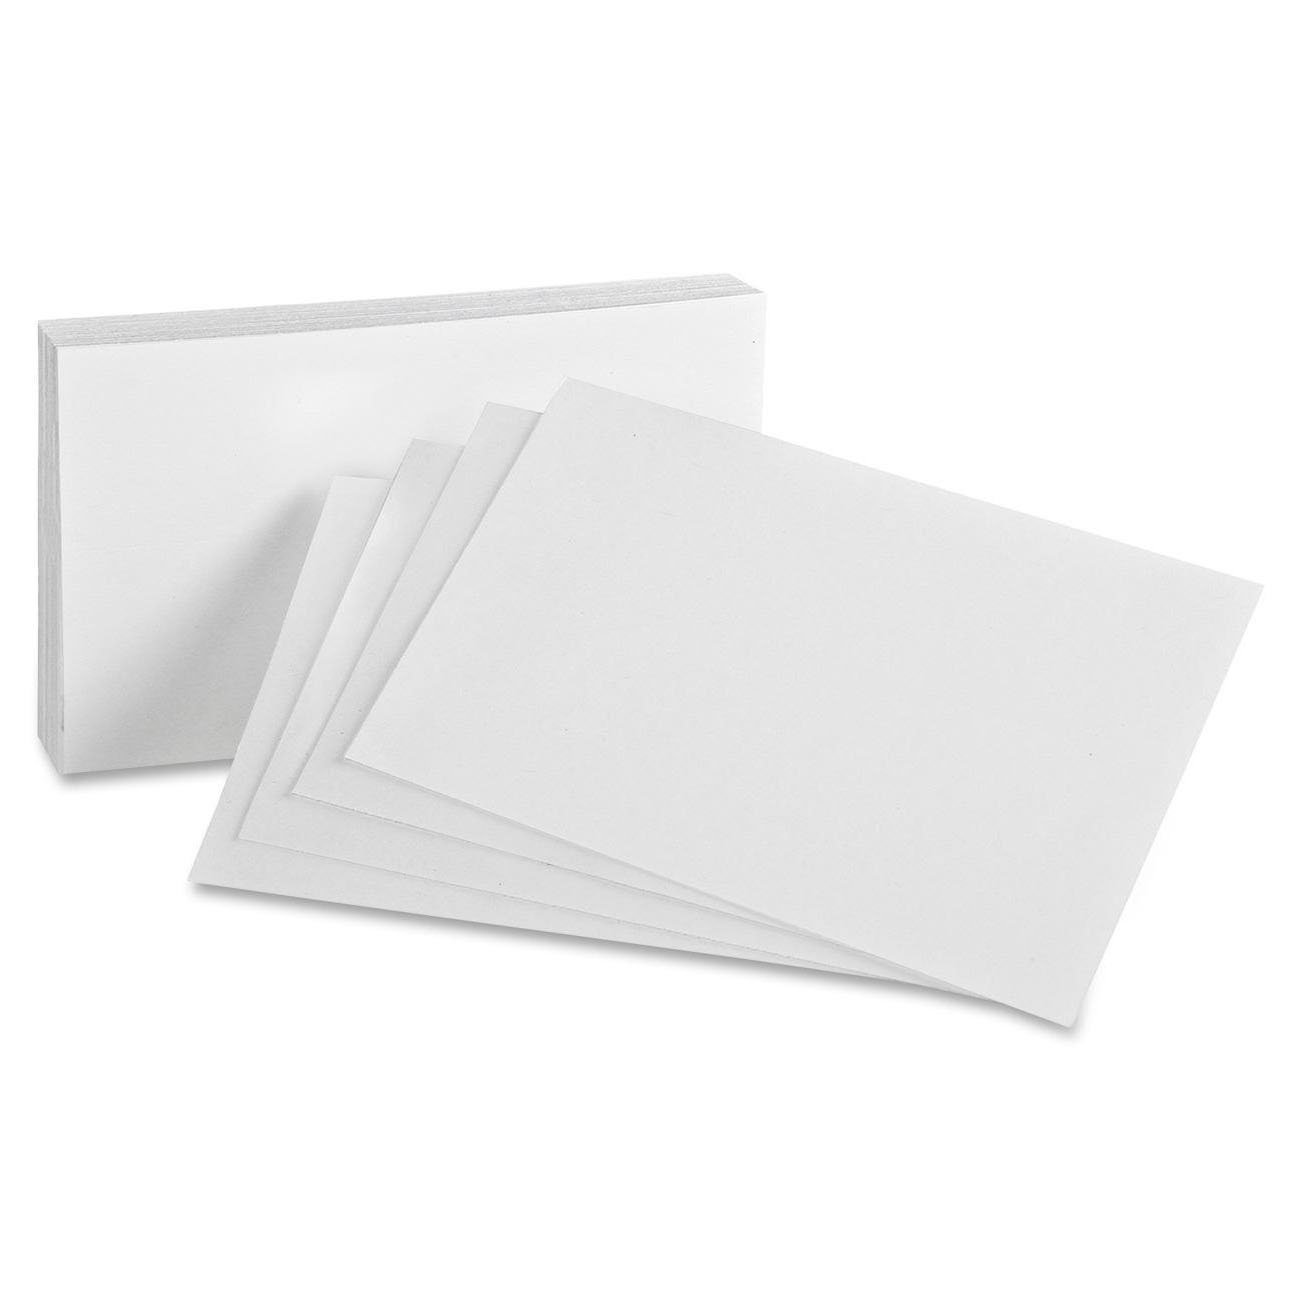 Extra Thick  Heavy Blank Index Cards, On 14pt. 100lb Heavyweight Thick White Cover Stock. 100 Cards Per Pack (5 X 8)